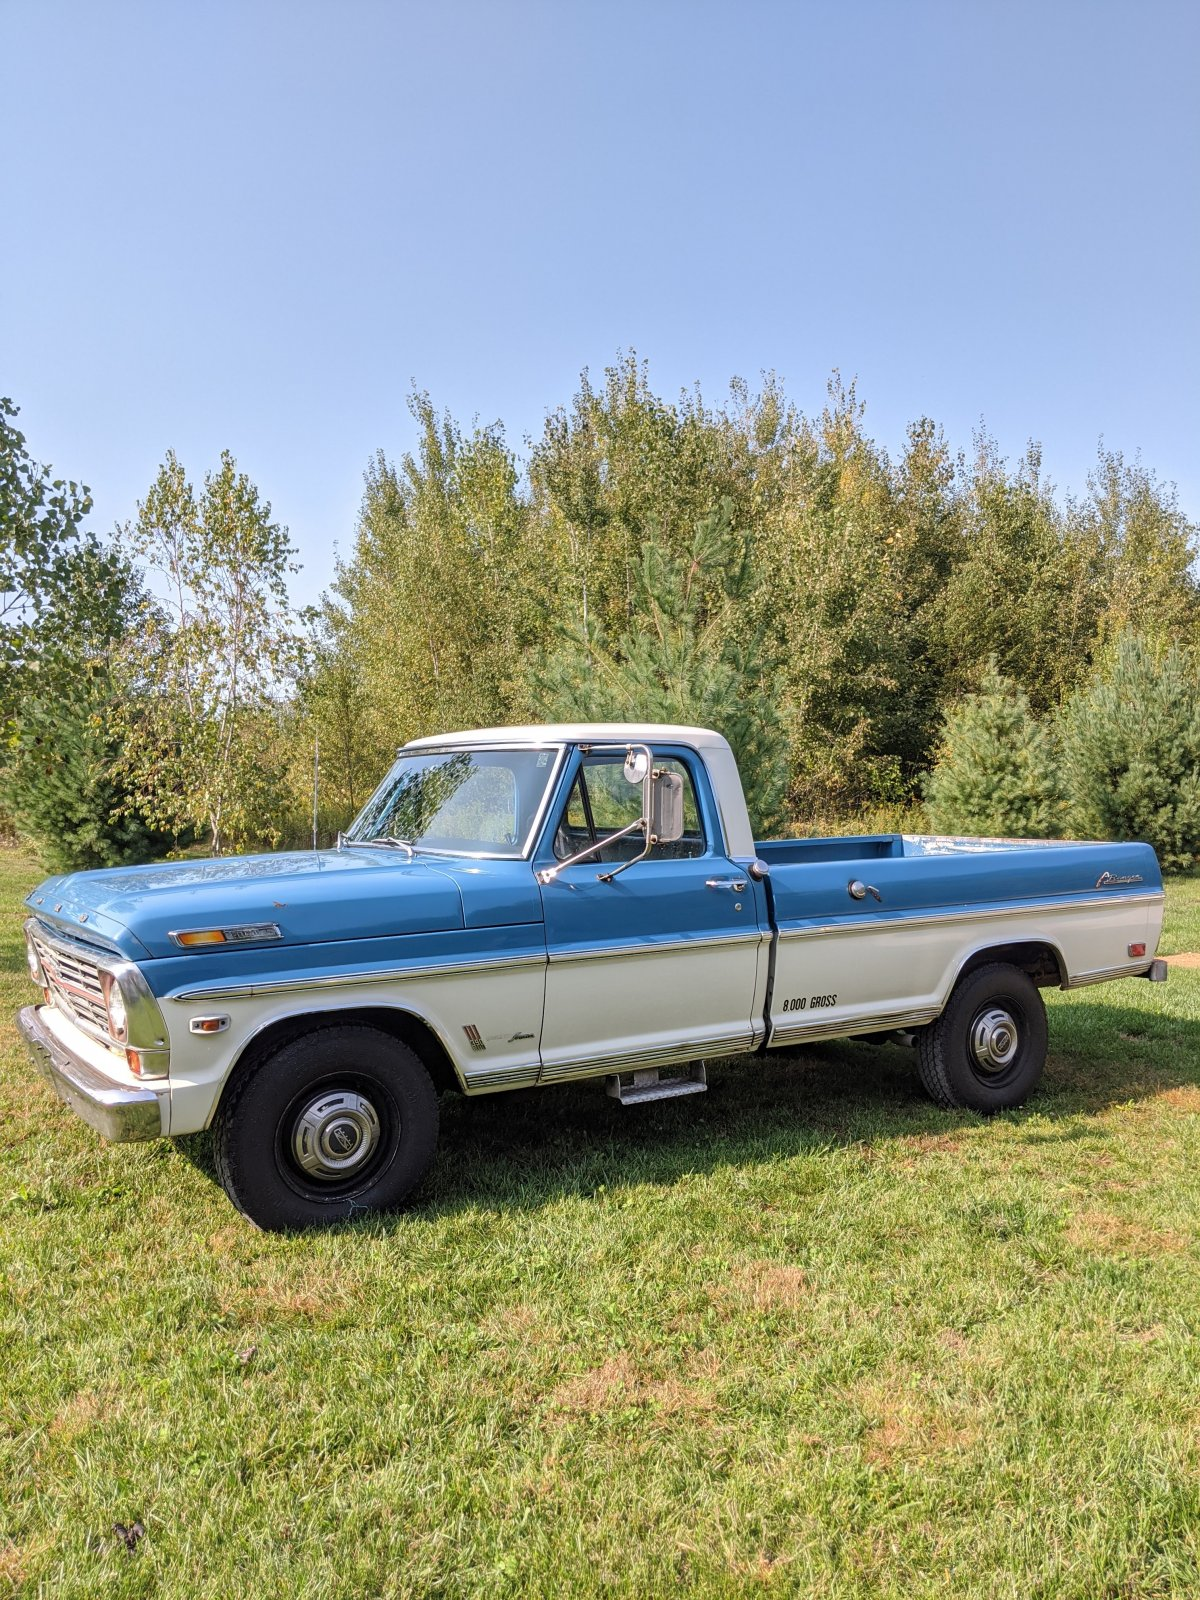 1969 Ford F-250 (Washington Truck) 4.jpg